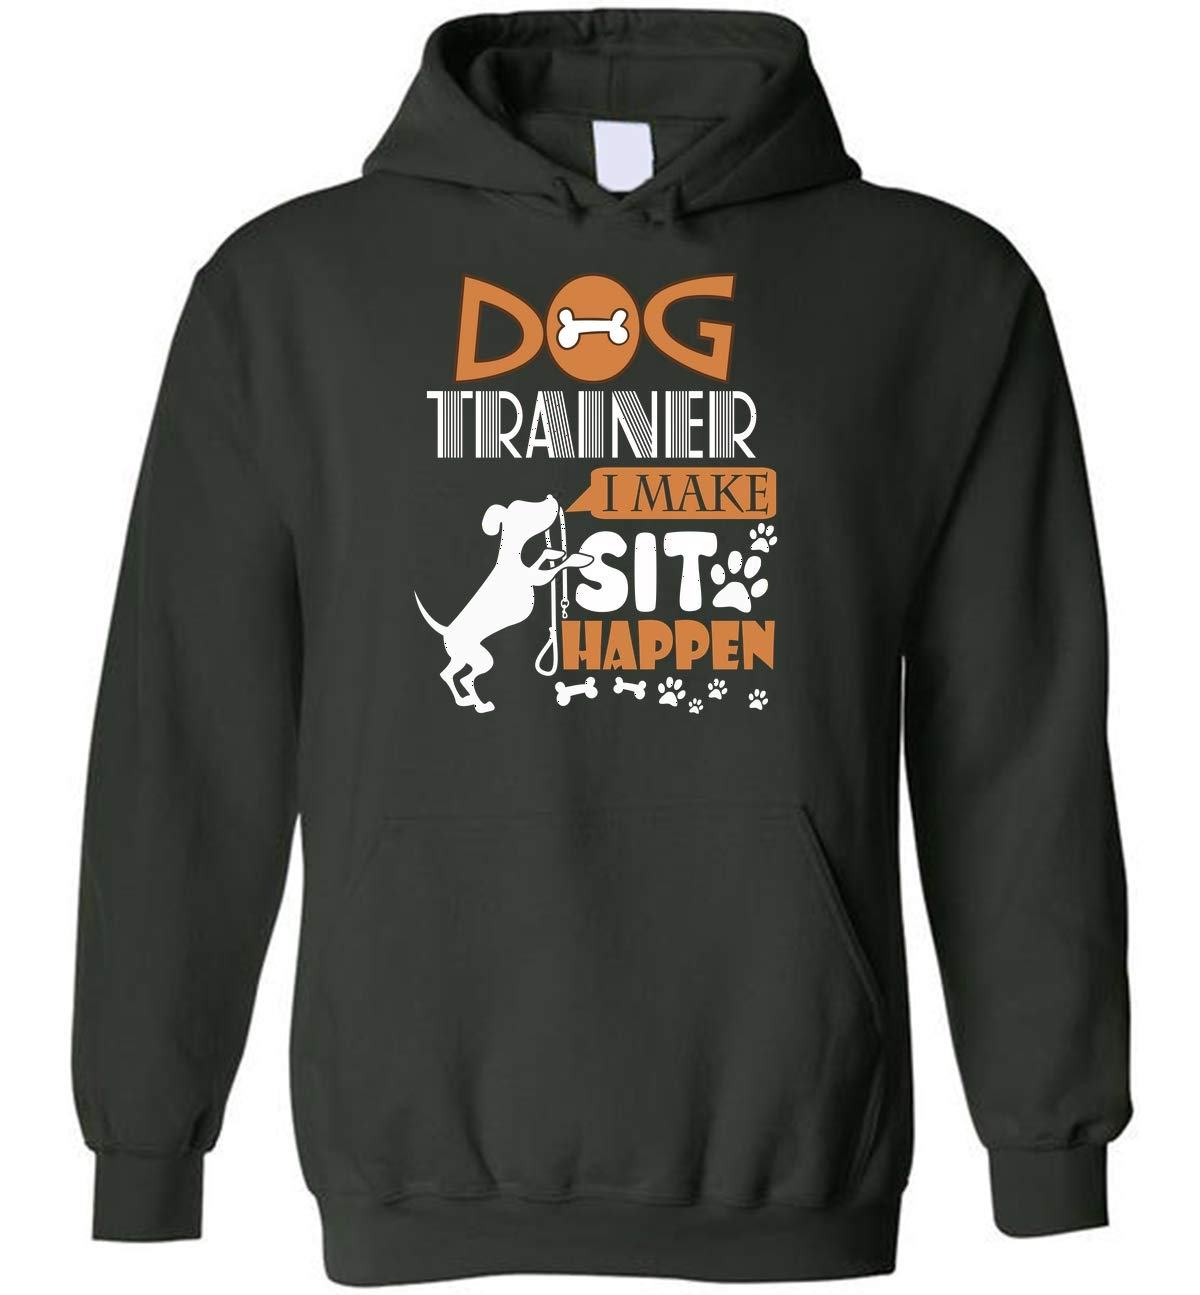 Funny Dog Trainer Blend Hoodie Dog Commands Obedience Training (Forest - S)